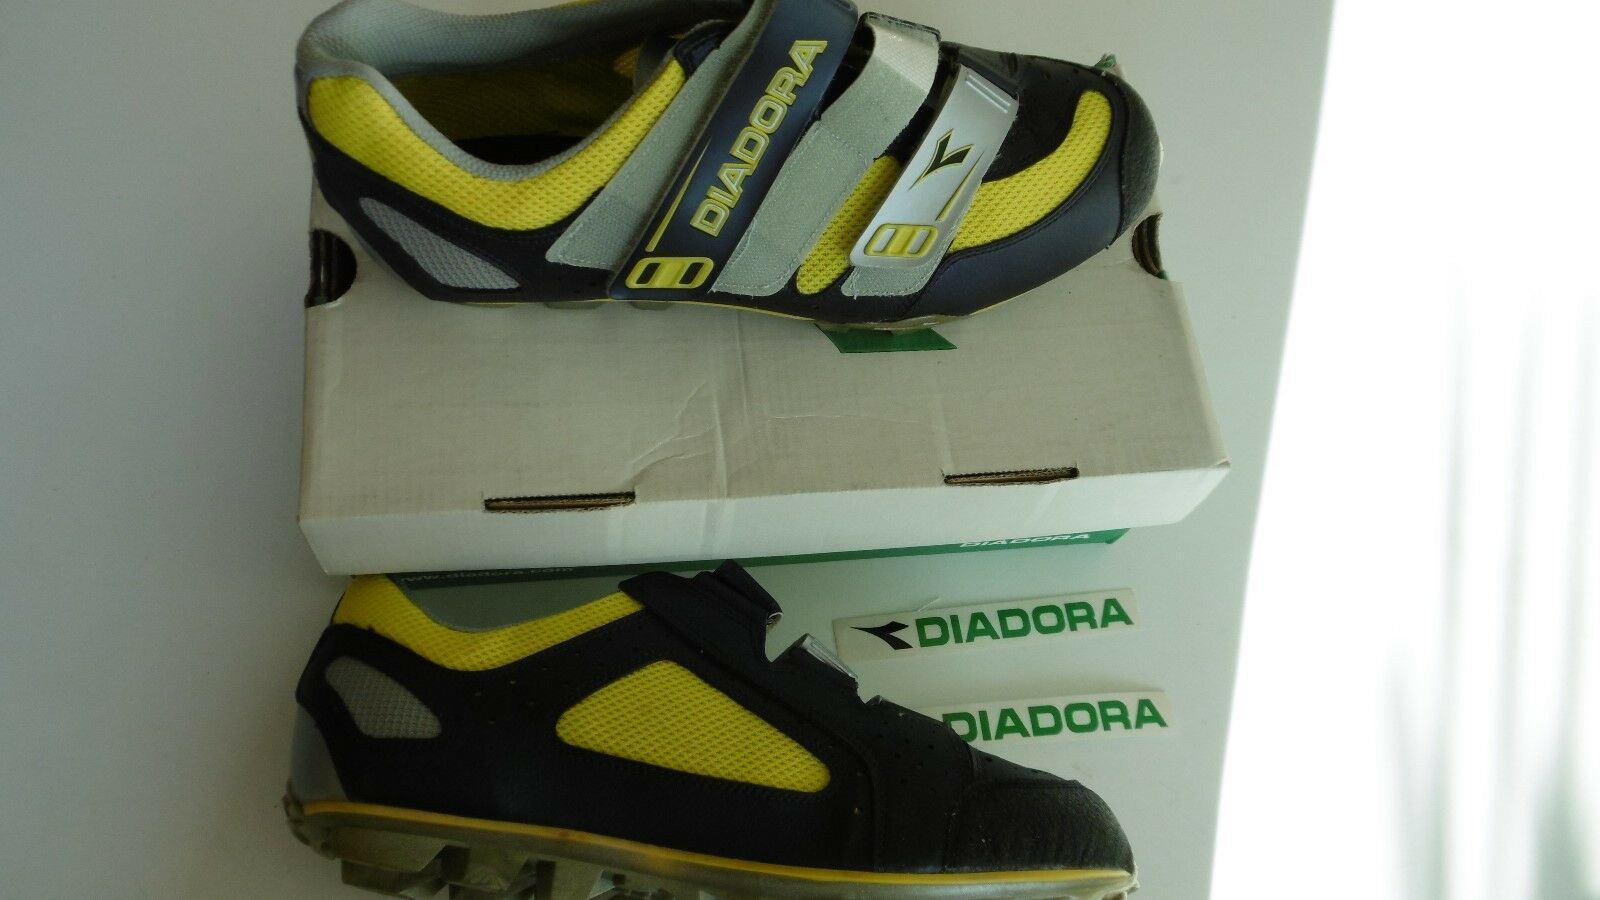 Diadora Mamba shoes Size 45 New In Box